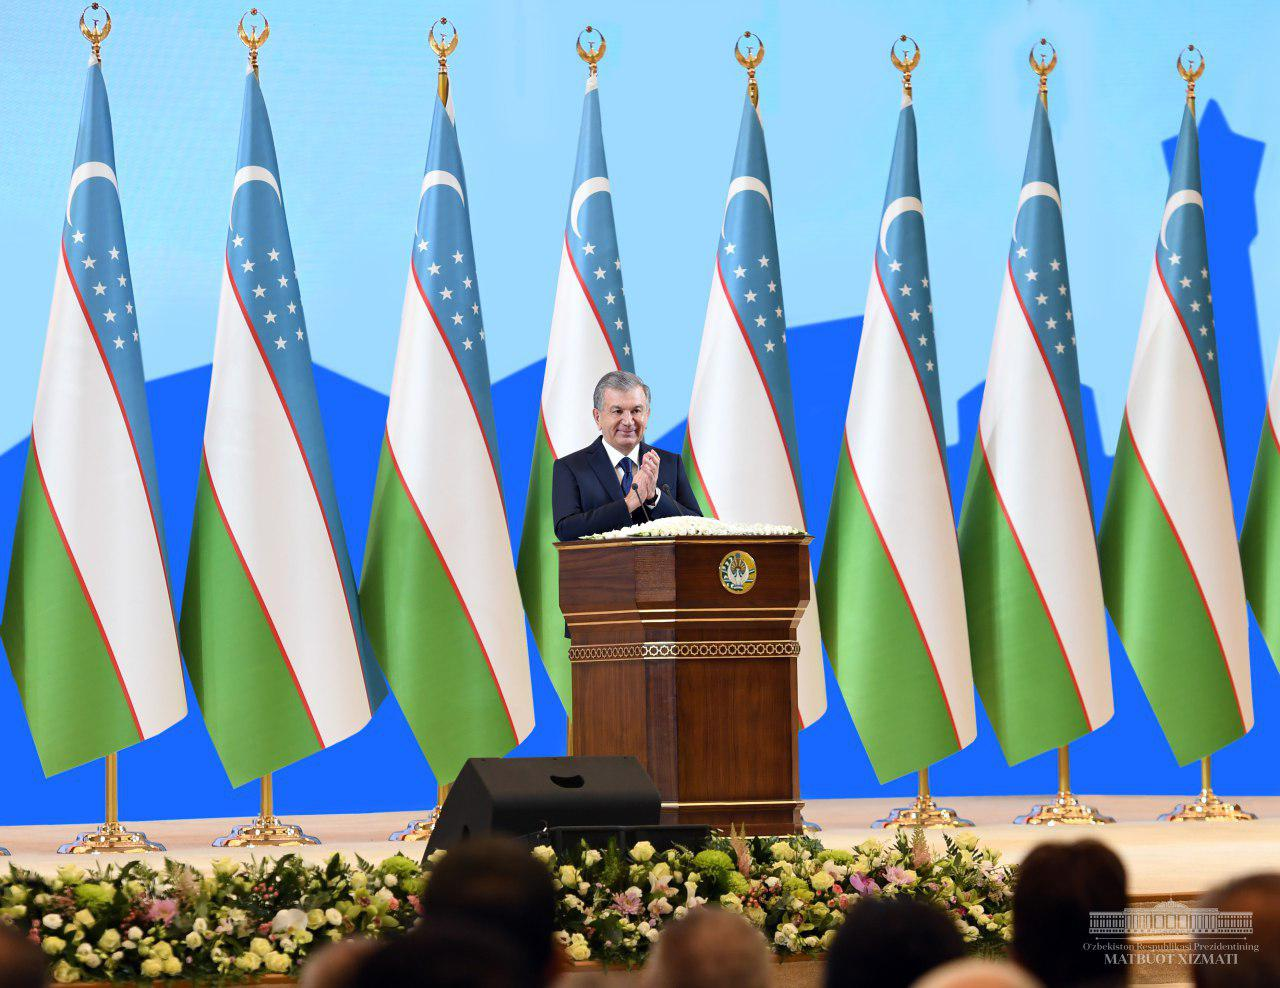 President Shavkat Mirziyoyev's speech at the festive event occasioned to the 30th anniversary of granting Uzbek the status of state language